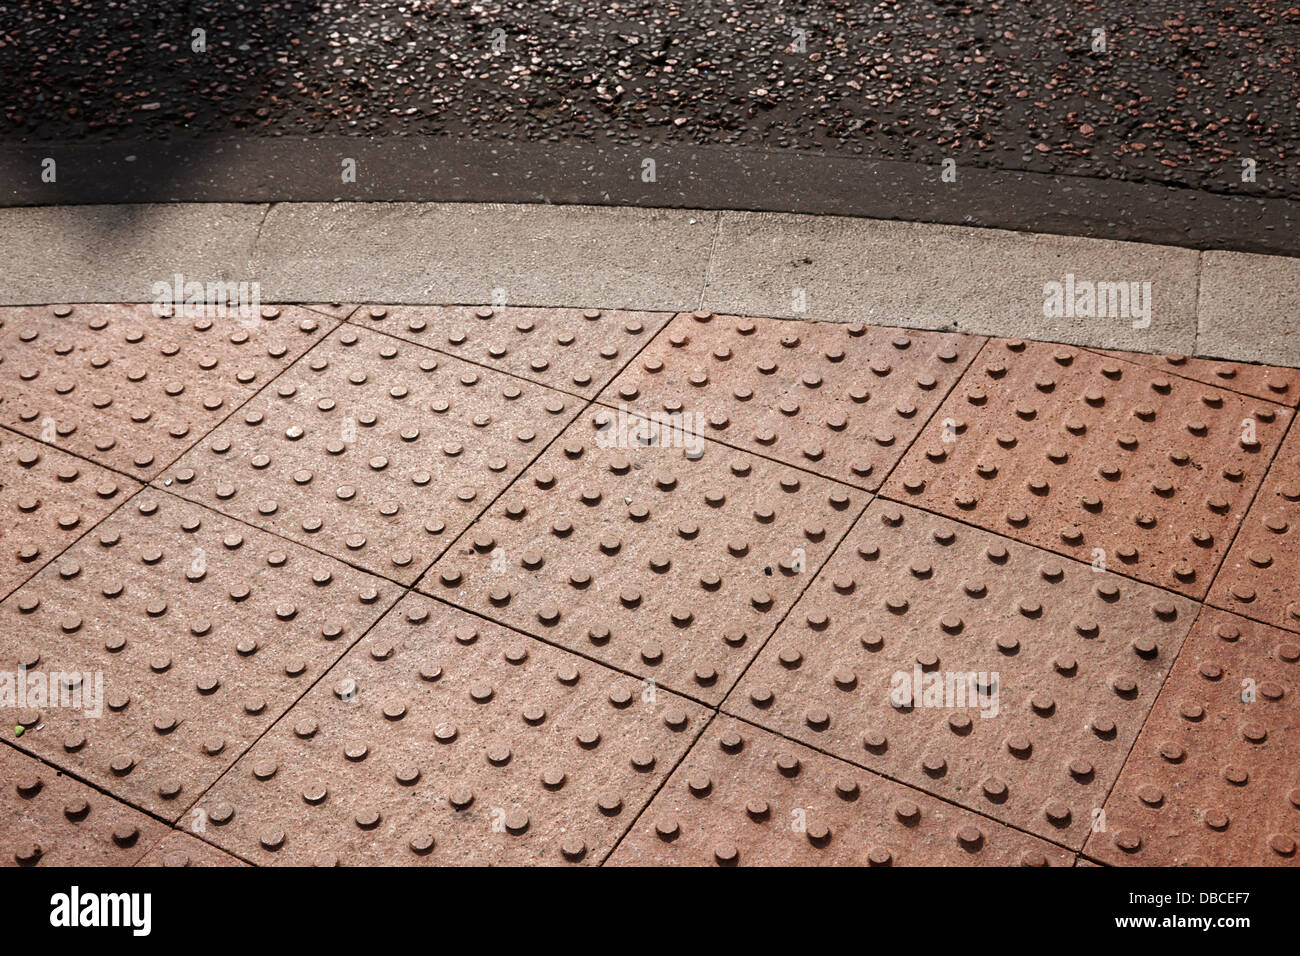 truncated dome tiles tactile pavement as a disability aid in the uk - Stock Image